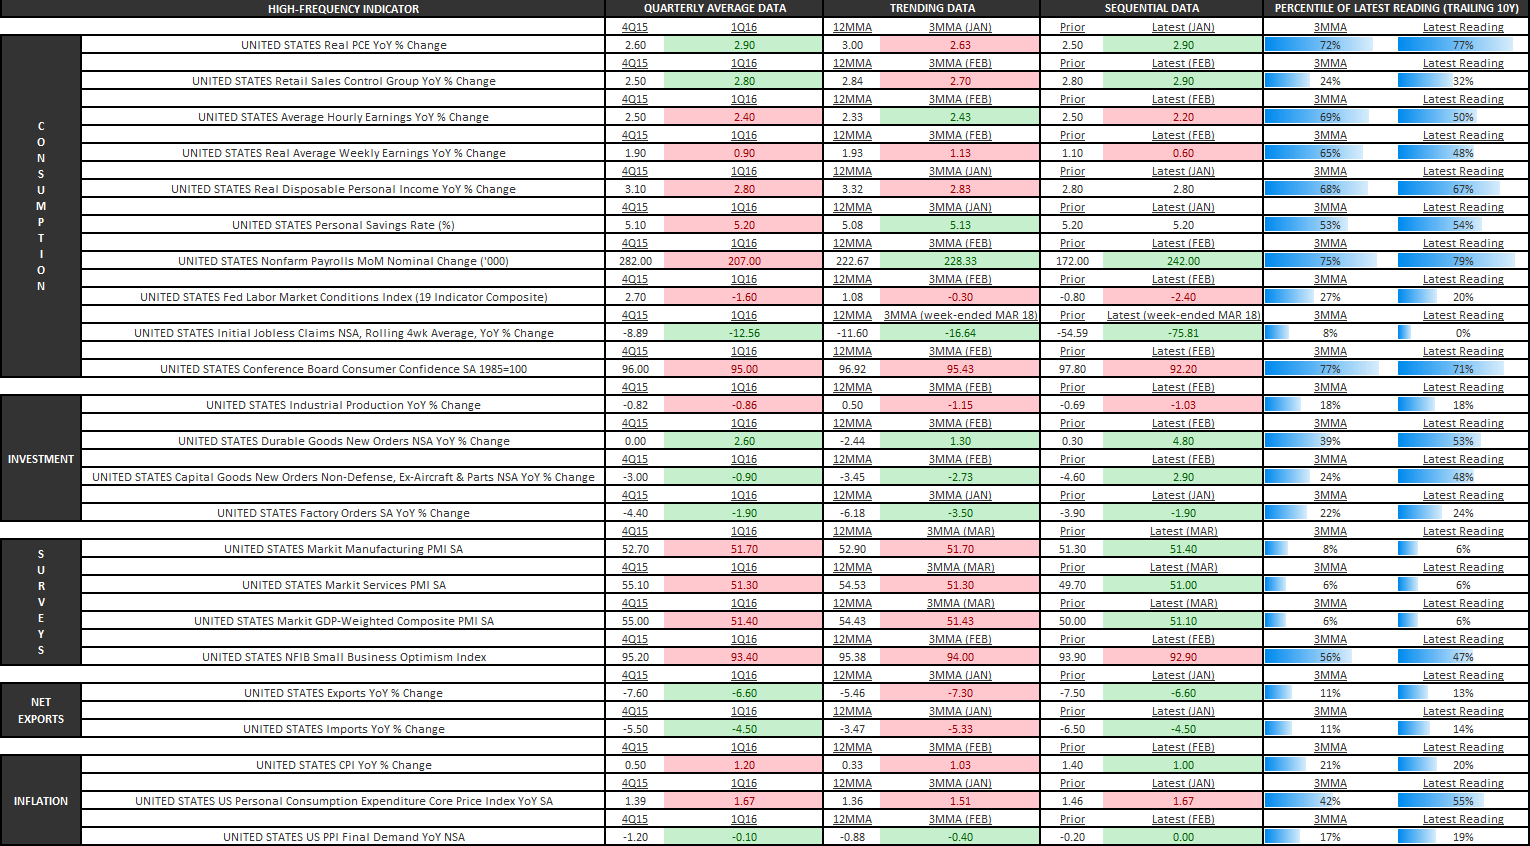 Macro Playbook: Helping Bears Maintain Our Collective Conviction - U.S. Economic Summary Table